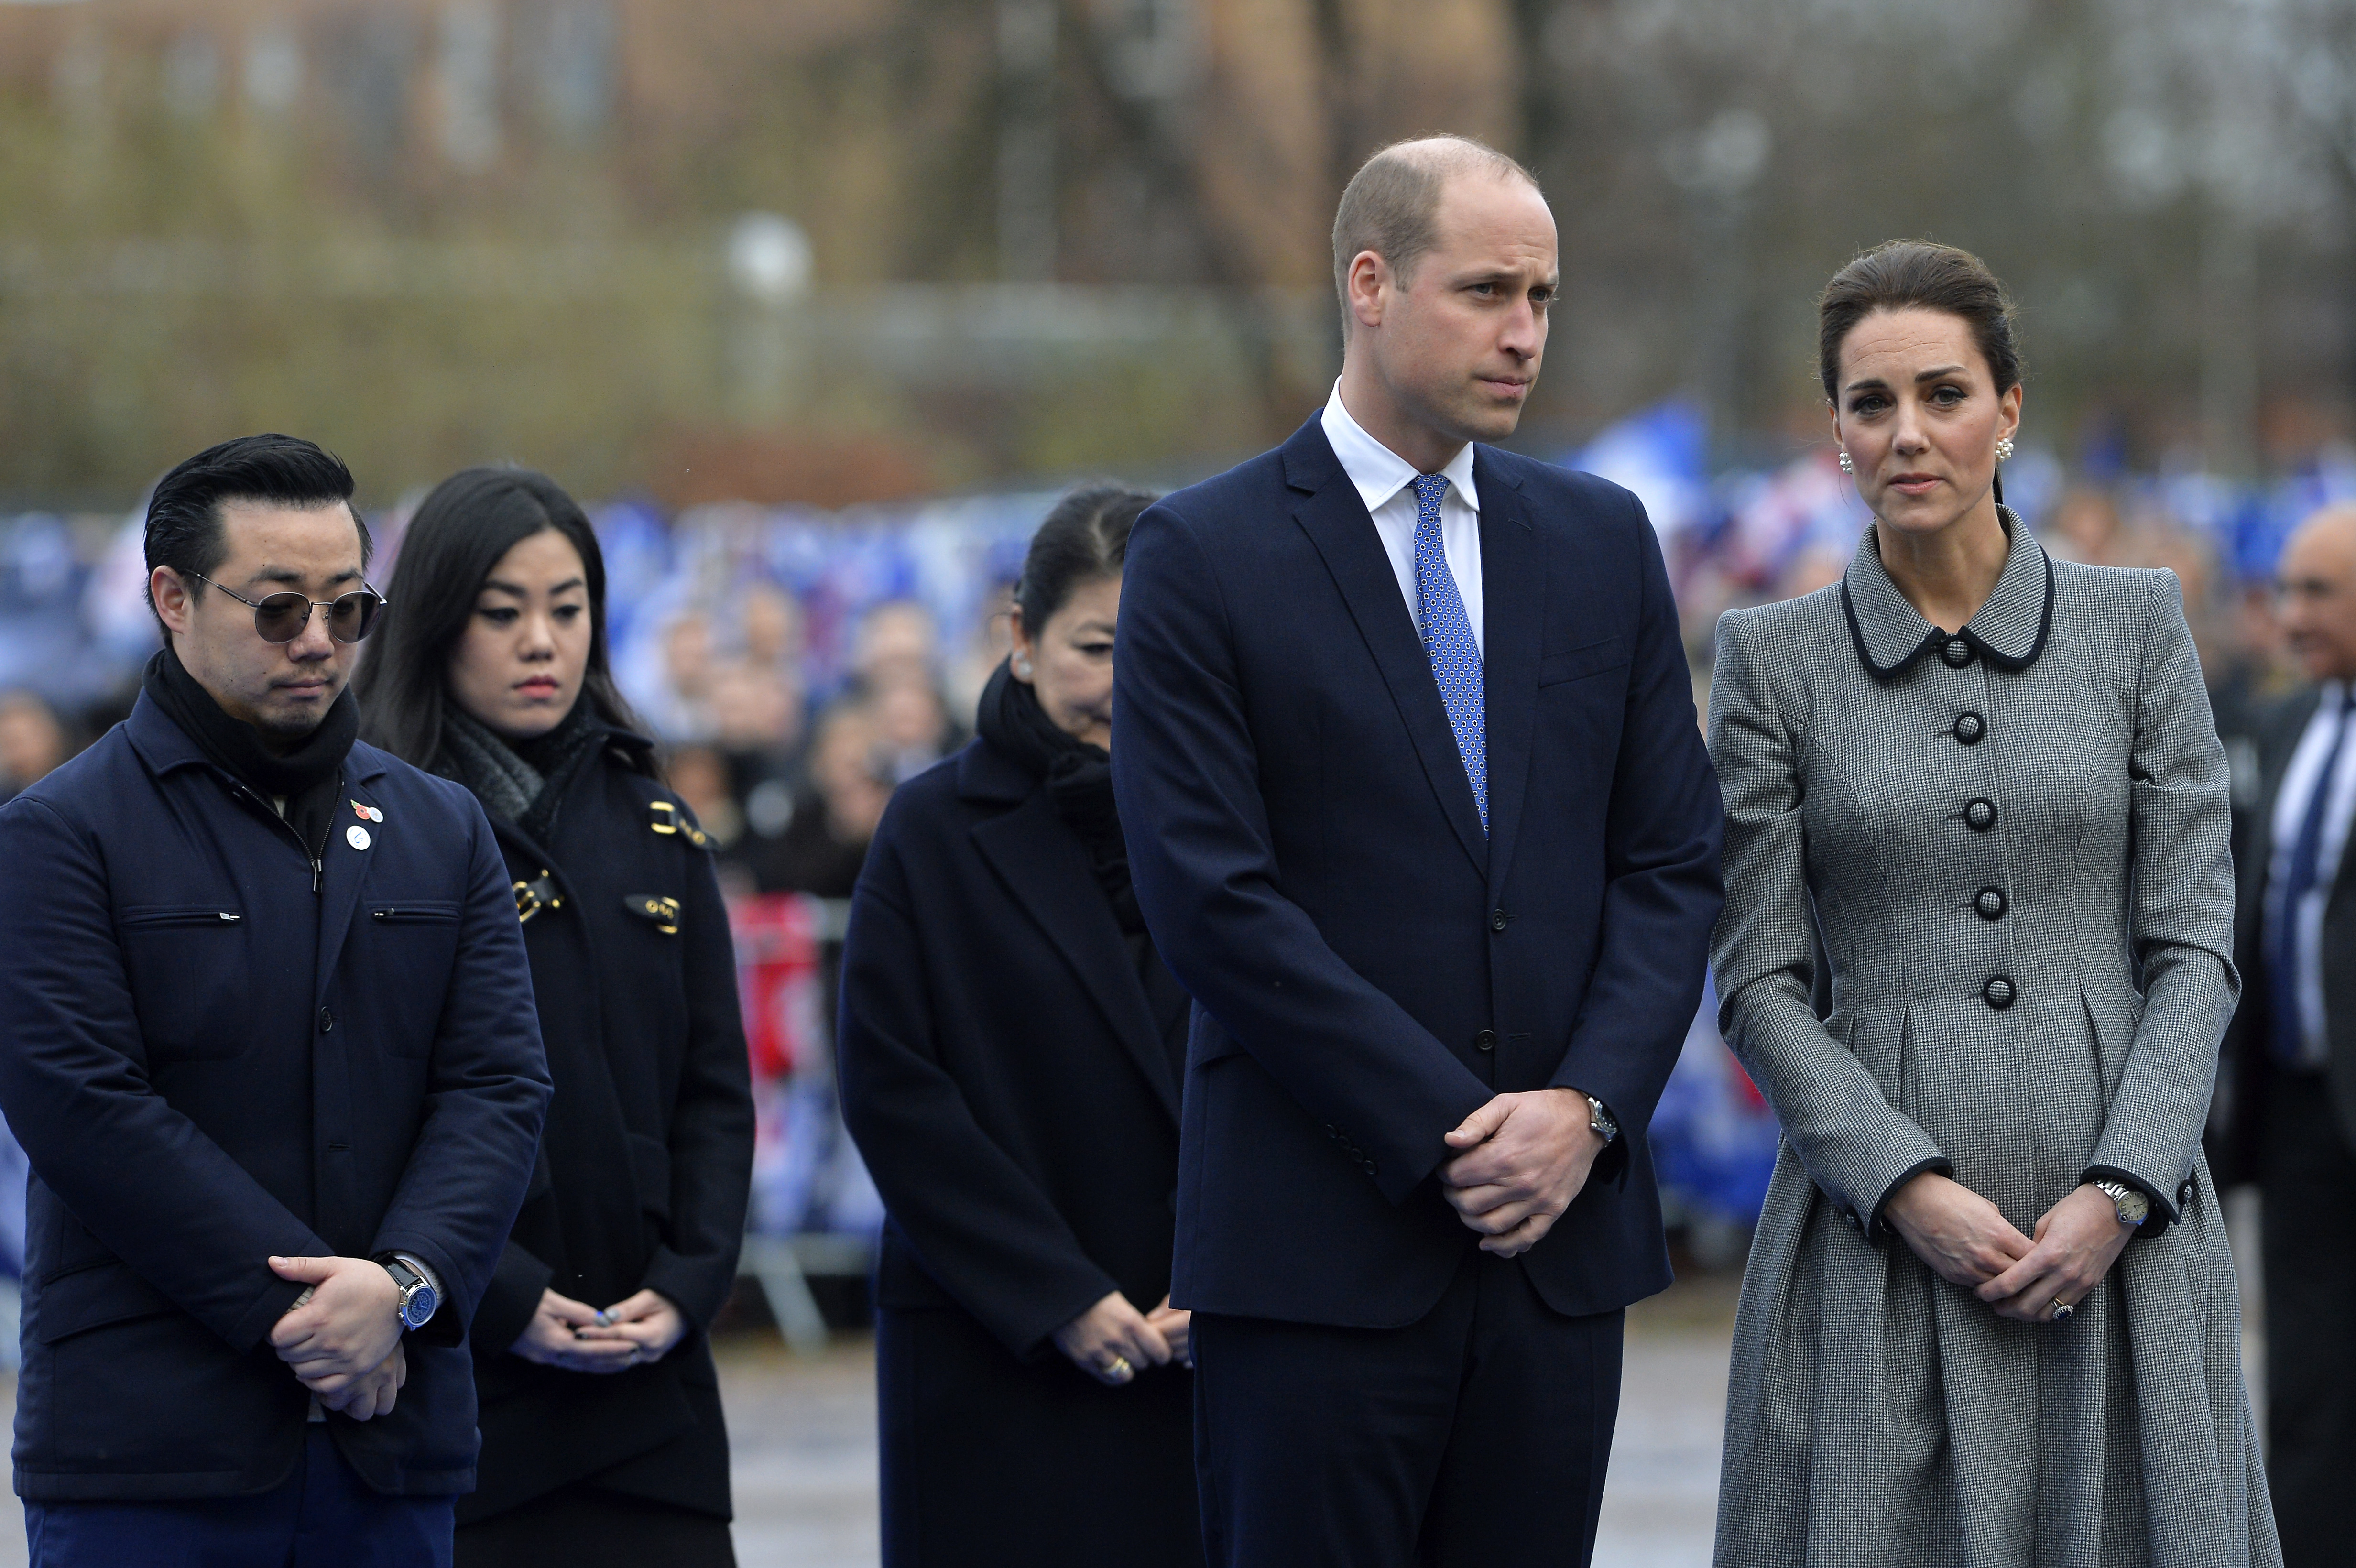 Prince William And Kate Middleton Honor Soccer Club Chairman Who